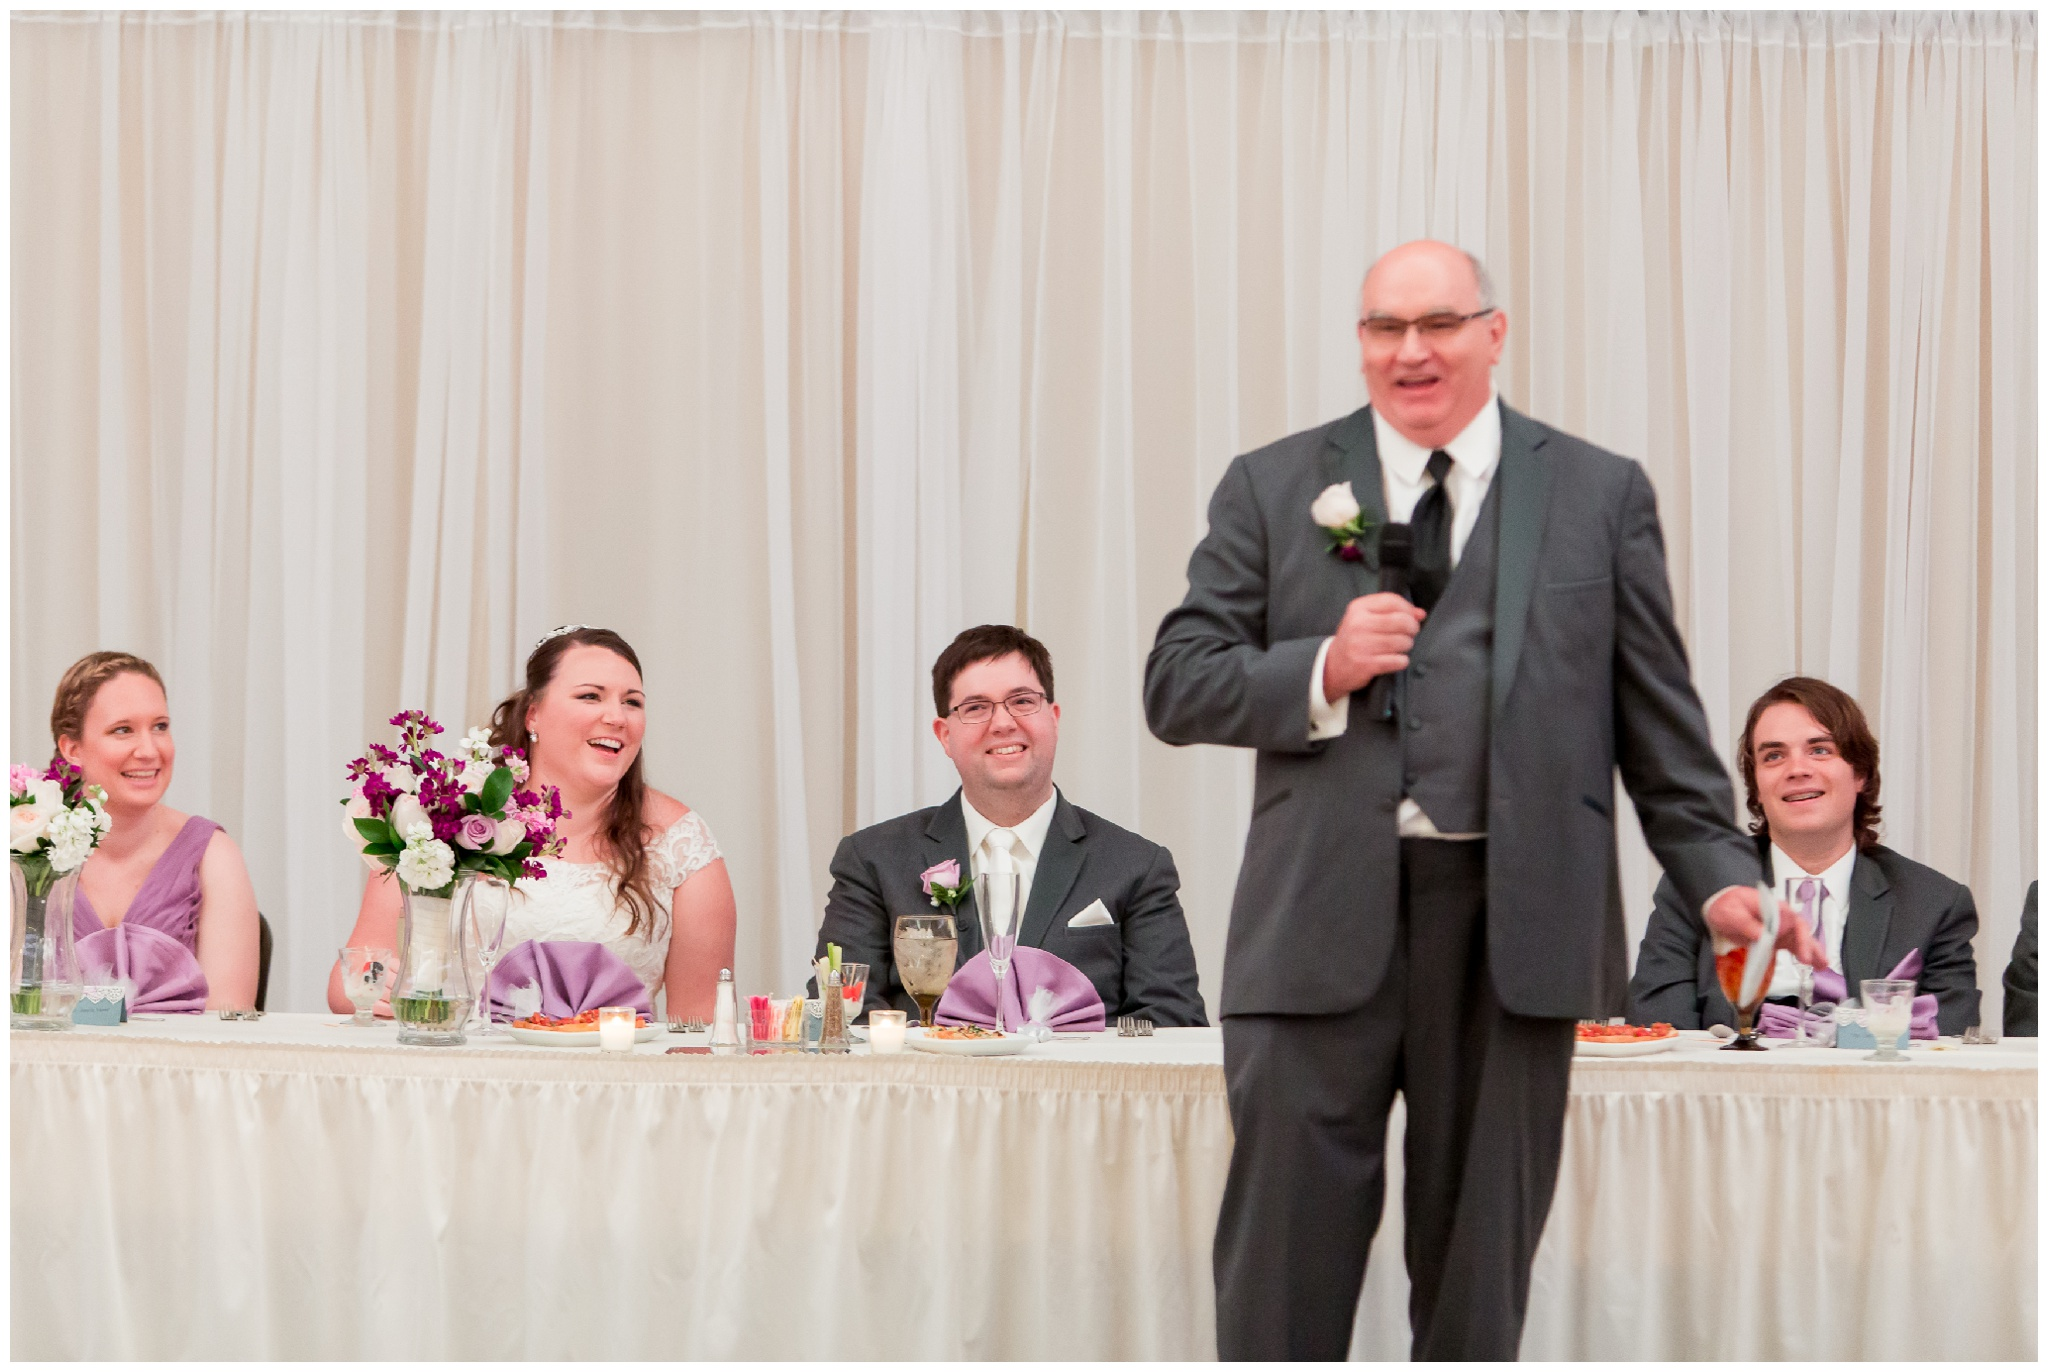 father of bride gives speech during wedding reception at Bel Air Events Kokomo